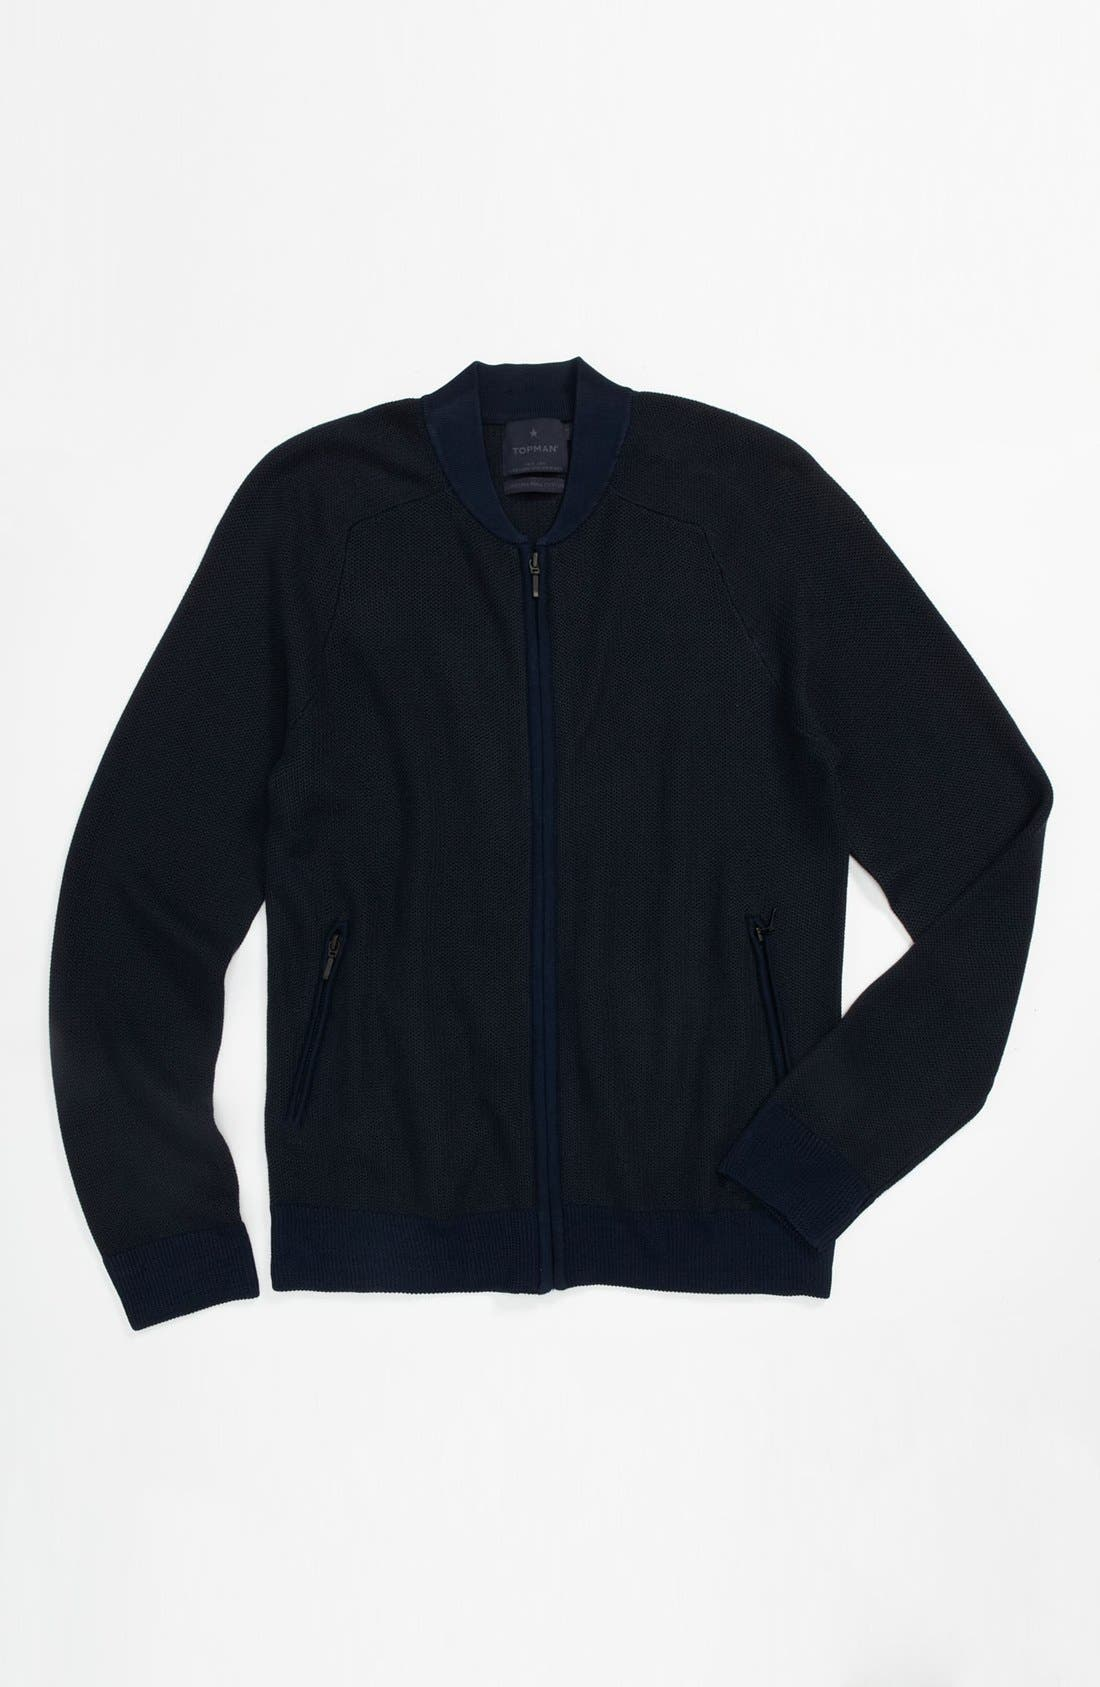 Alternate Image 1 Selected - Topman 'Lux Collection' Viscose Rayon & Cotton Zip Sweater